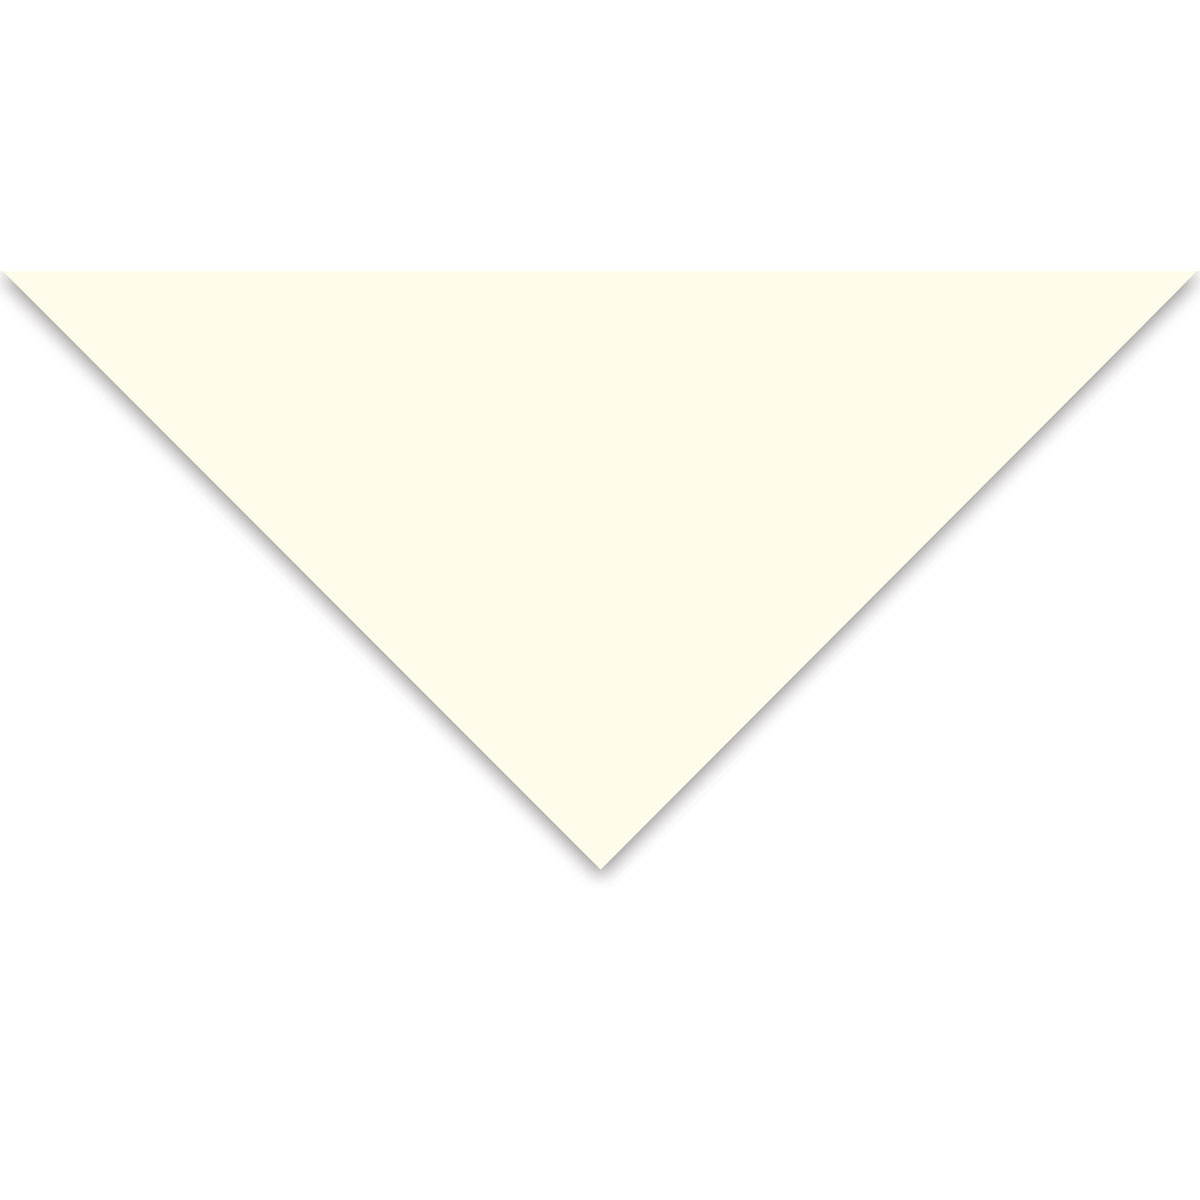 Strathmore Museum Mounting Board - 32 x 40 x 2-ply, Cream